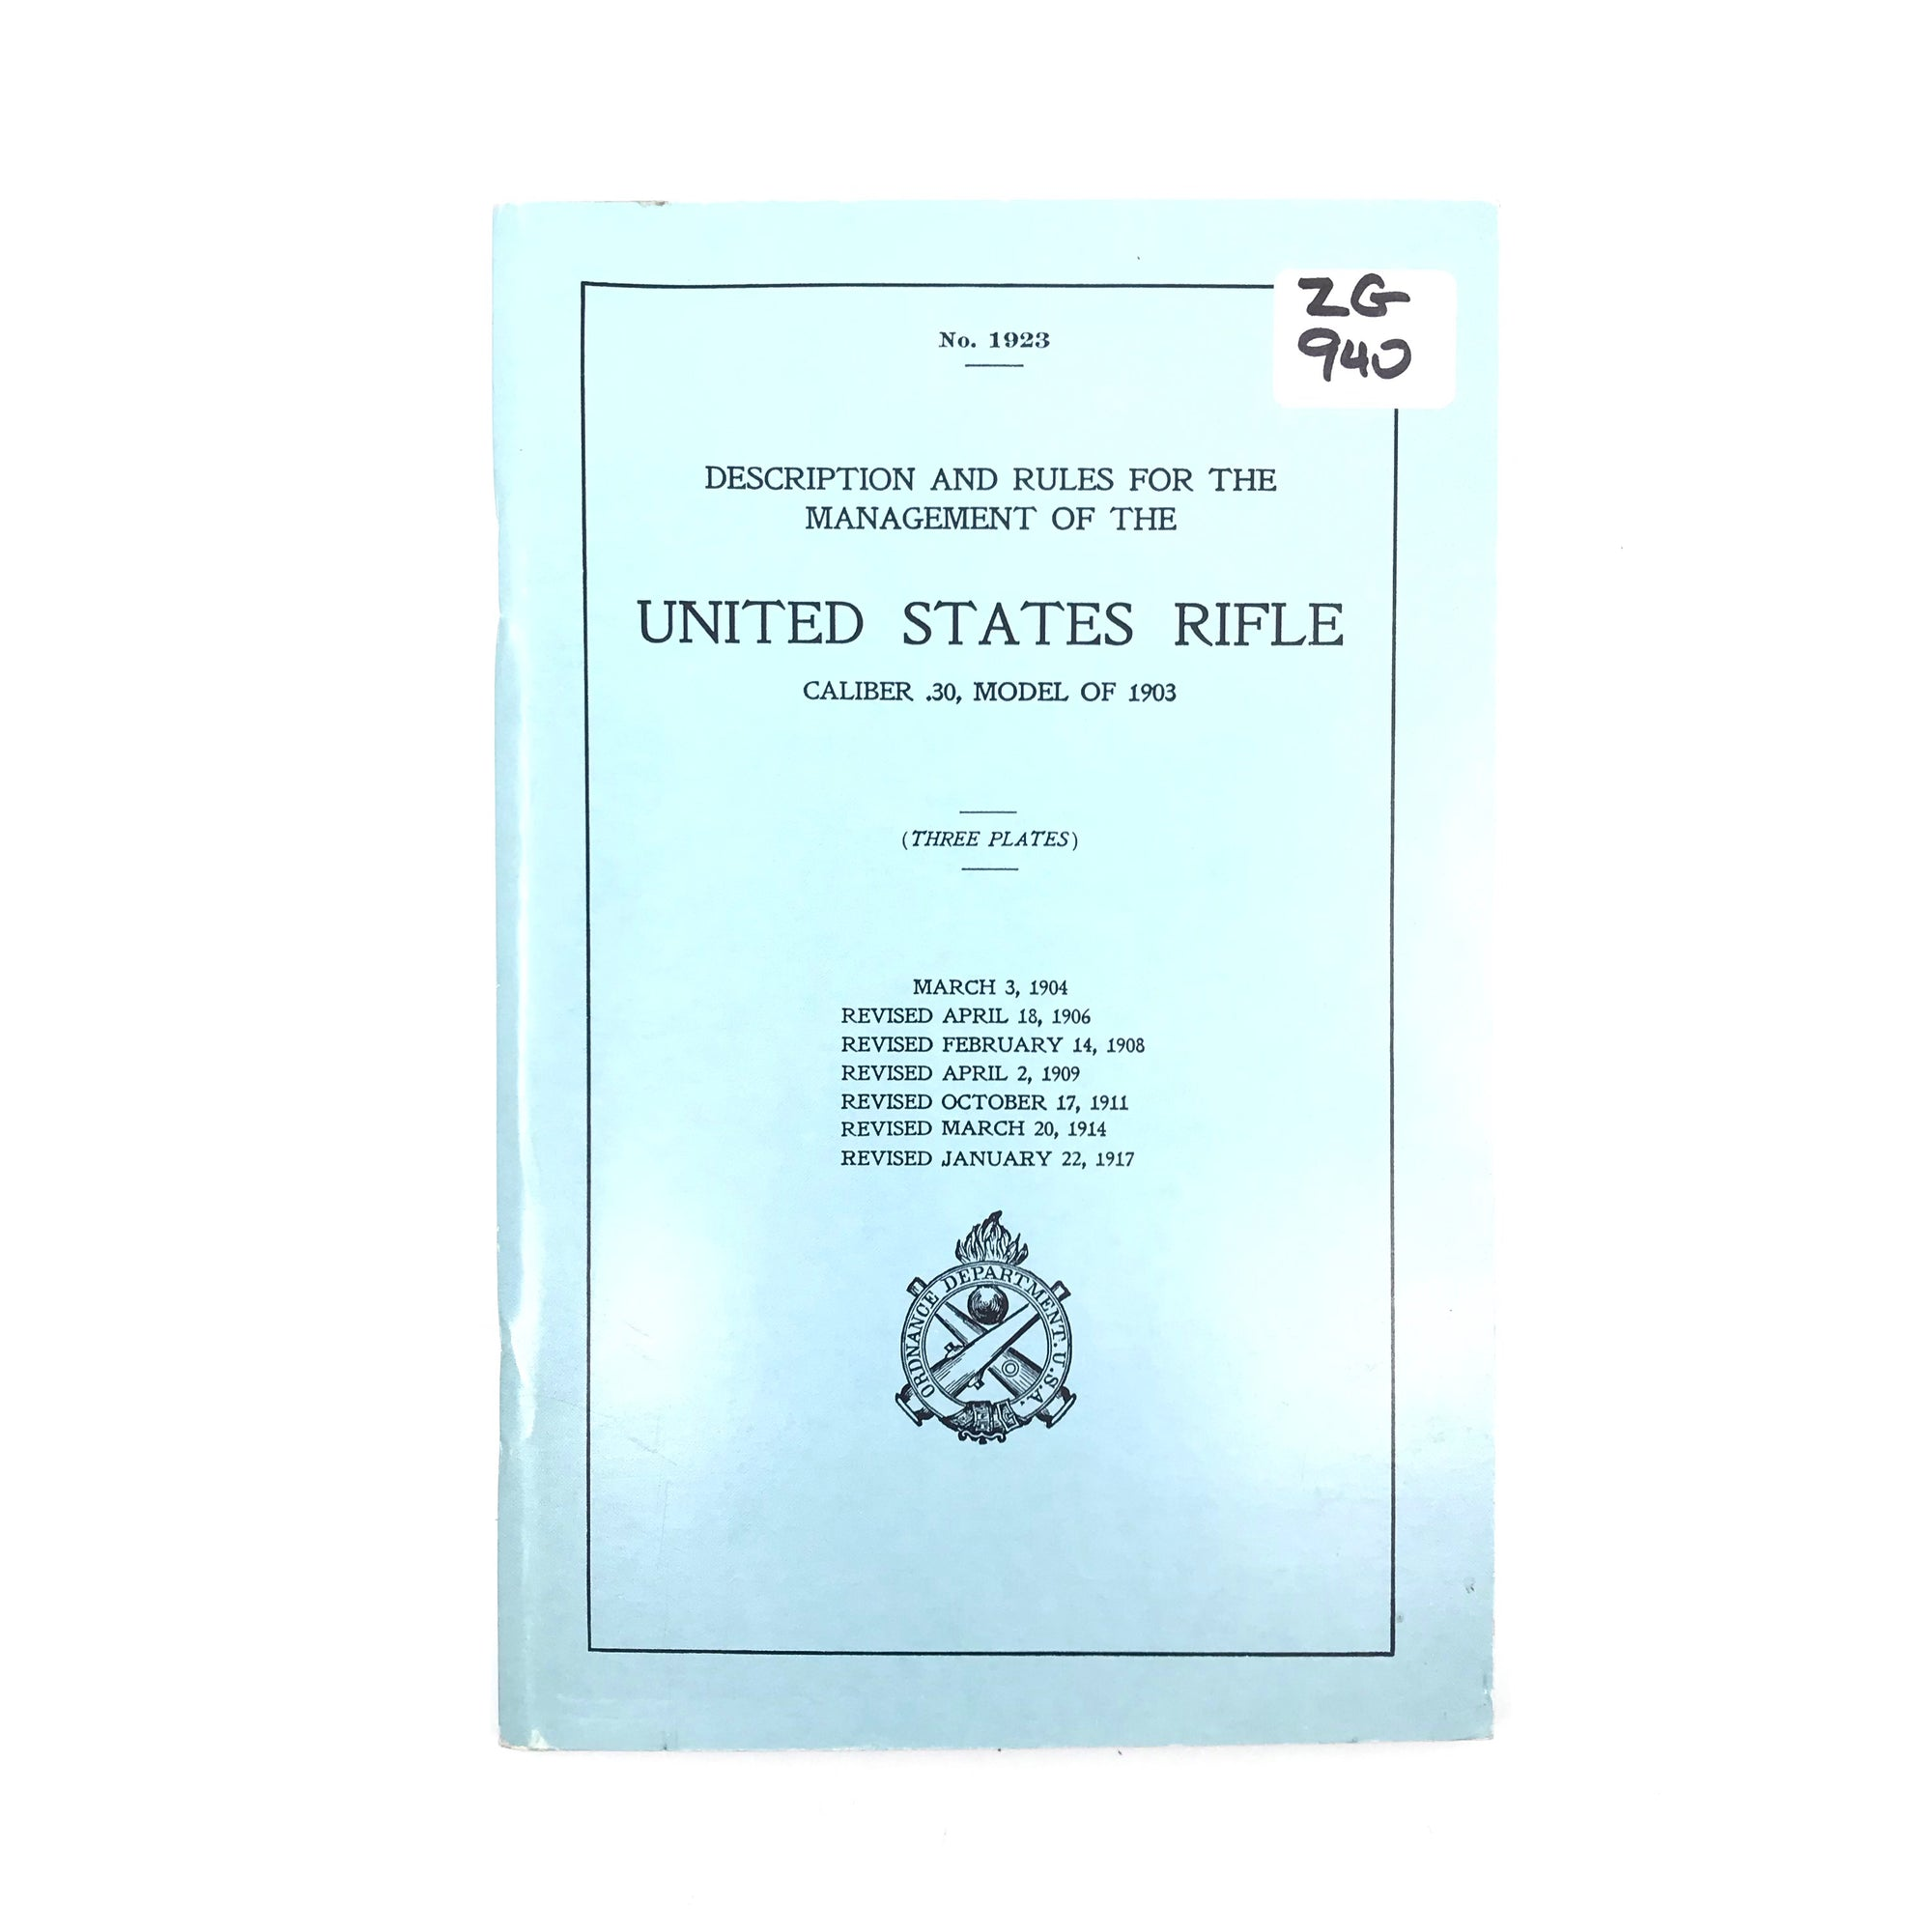 Description And Rules United States Rifle Cal 30 Model of 1903 ODUS SB 80pgs